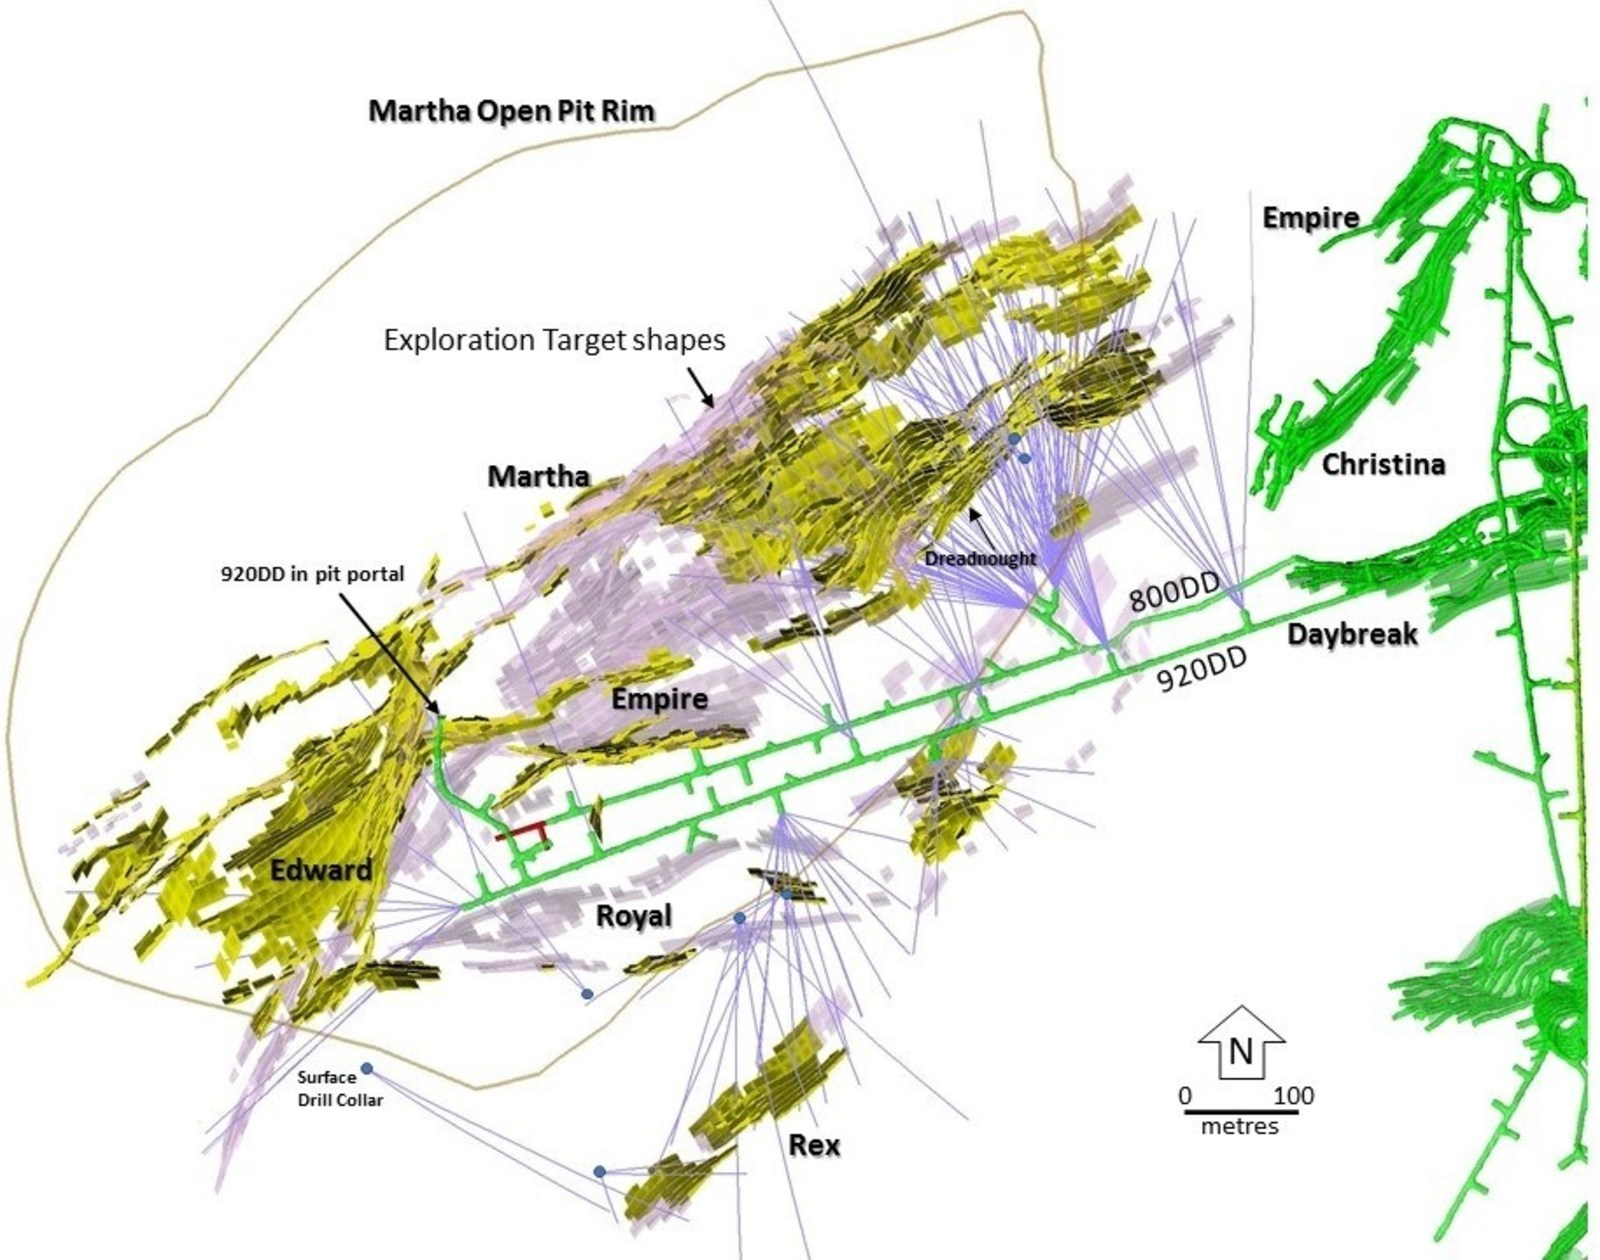 Figure 2 – Plan View showing holes drilled from August 2017 to January 2019 within the Martha vein system and the dominant targeted veins. Pink = Main Target Areas, Yellow = Current Martha Underground Resource Areas, Green = Recent and Current Mining Areas.